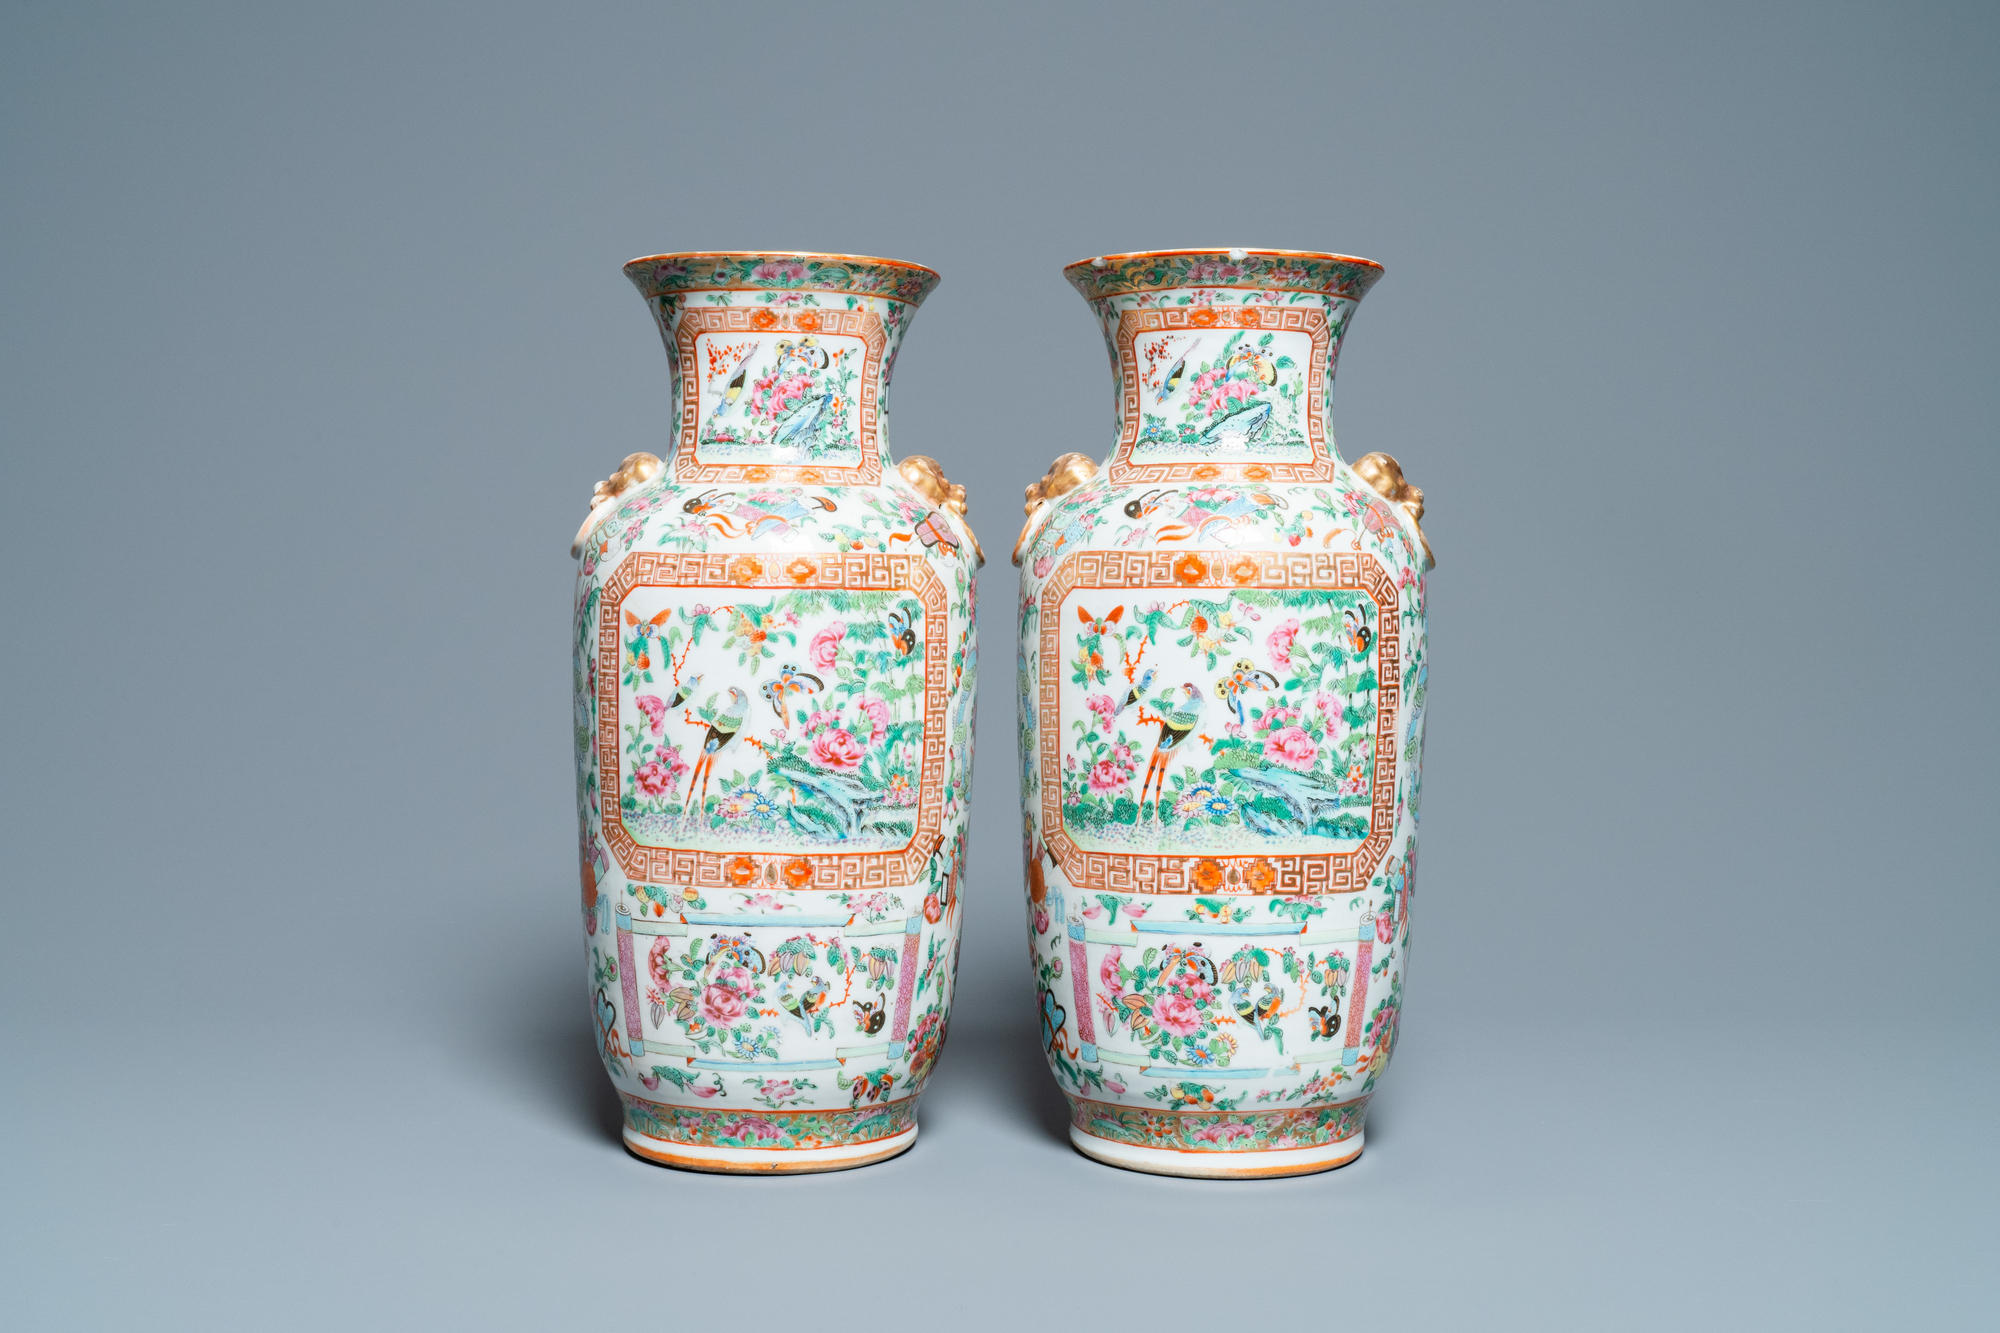 A pair of Chinese Canton famille rose vases, 19th C. - Image 3 of 6